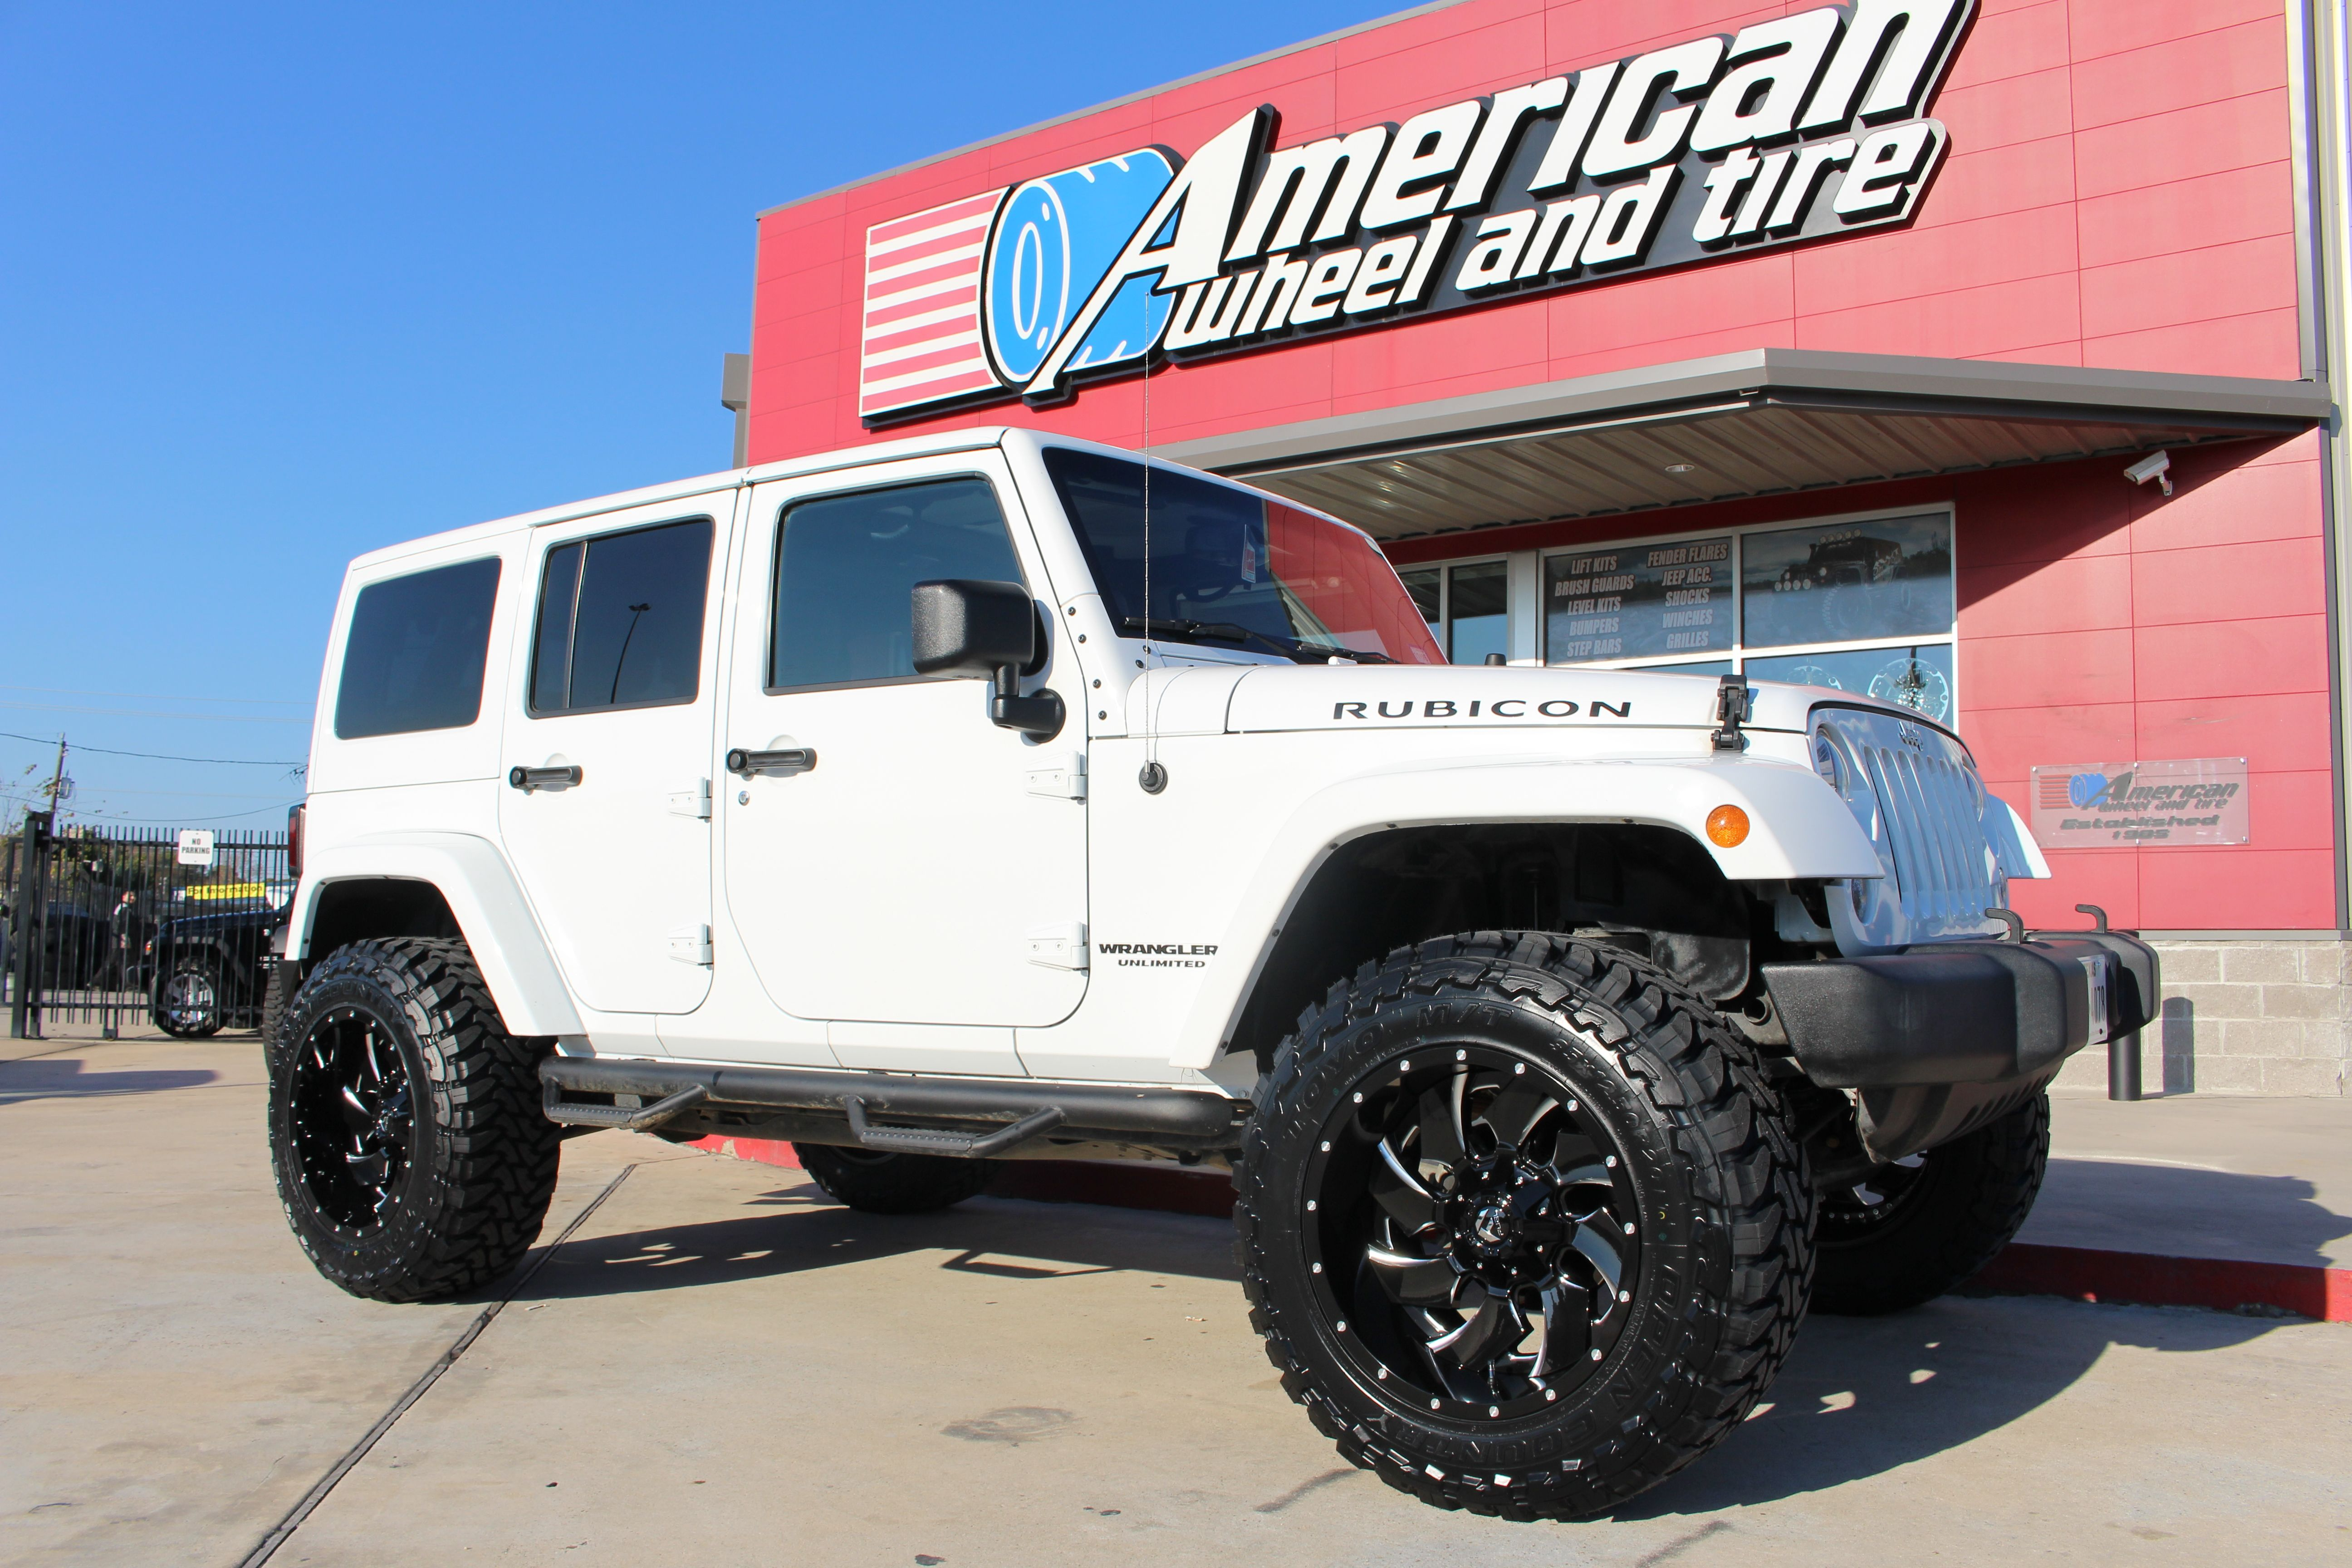 Pin By American Wheel And Tire On Blanco Jeep Wrangler Unlimited Lifted Jeep Lifted Jeep Wrangler